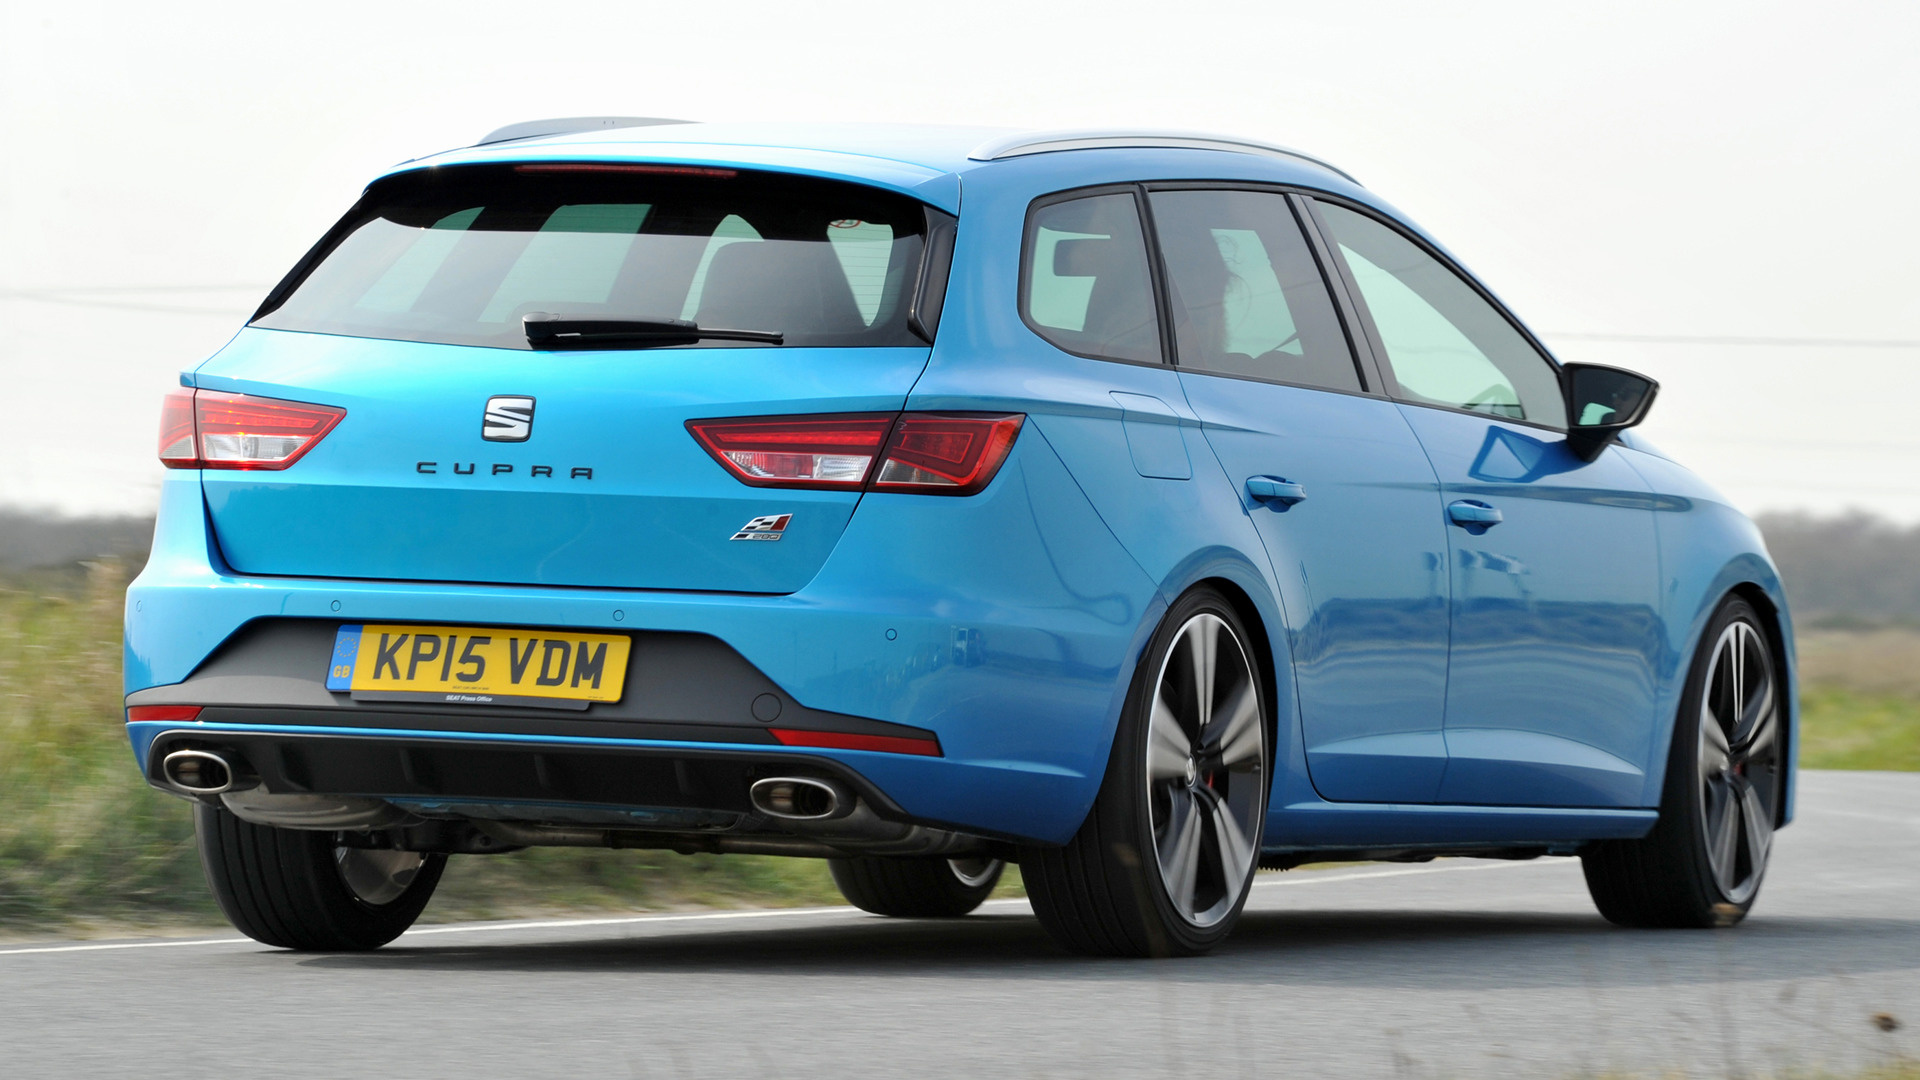 seat leon st cupra 280 2015 uk wallpapers and hd images. Black Bedroom Furniture Sets. Home Design Ideas